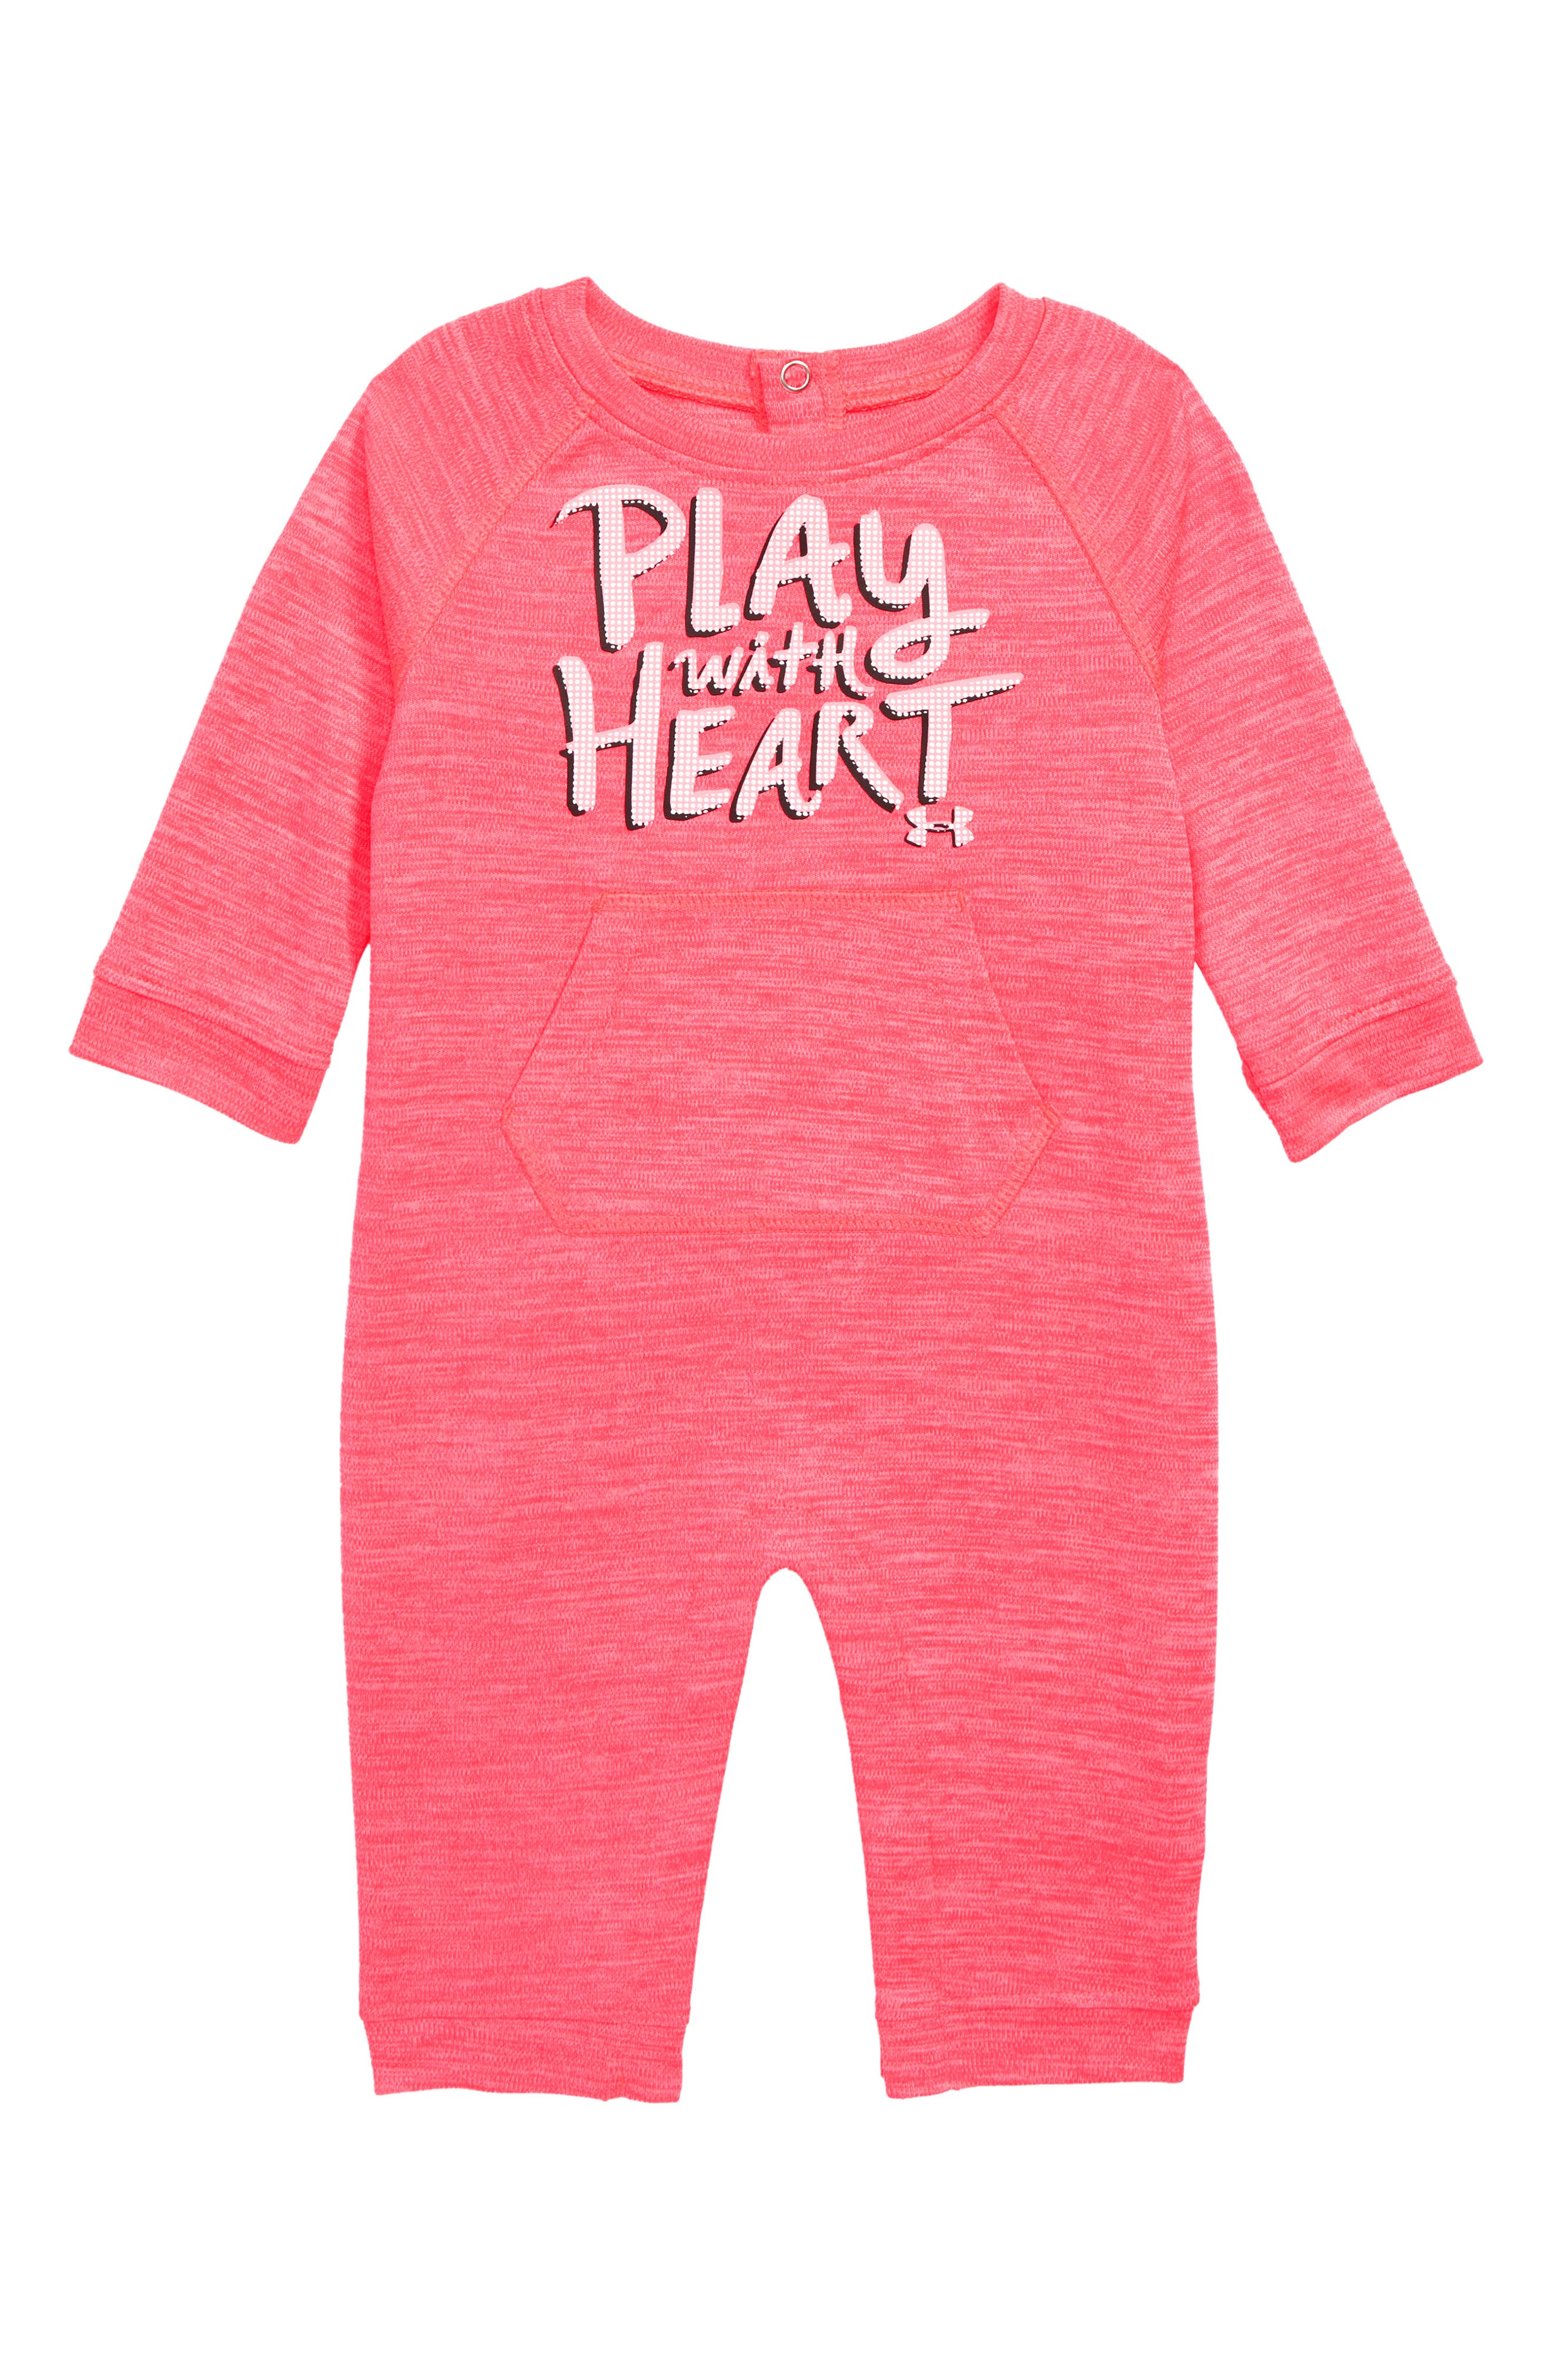 Play with Heart Graphic Romper,                         Main,                         color, 670